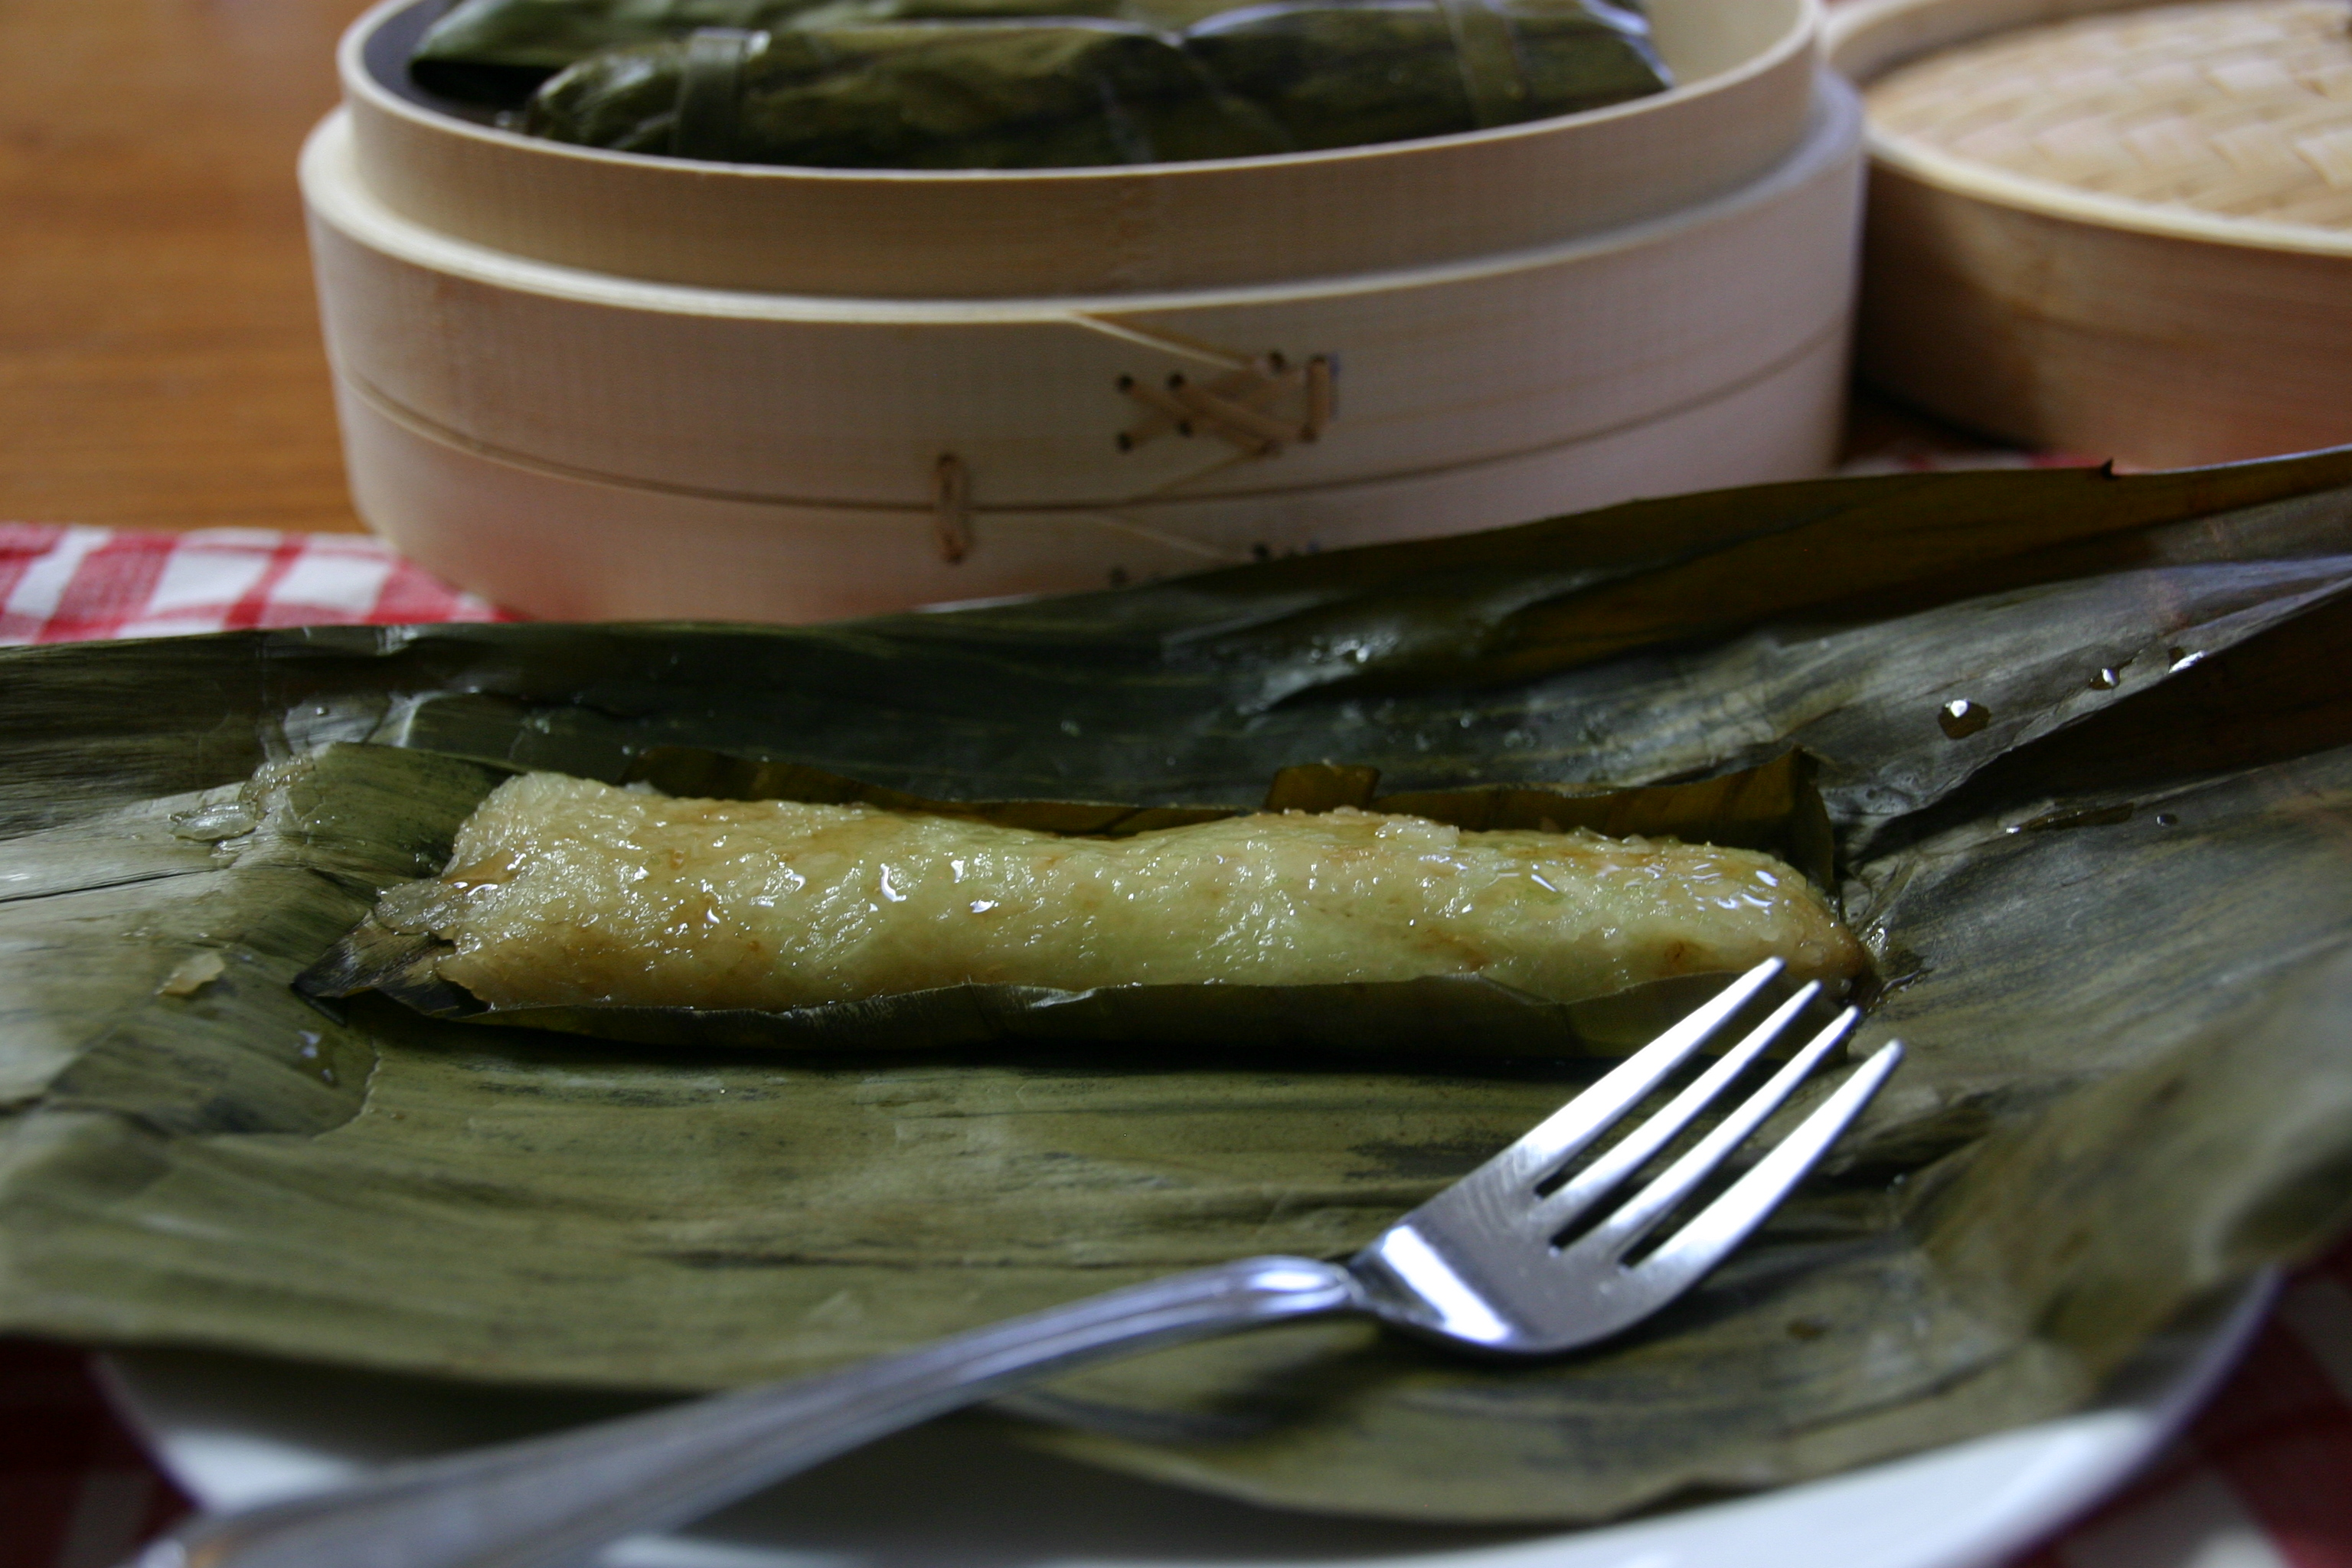 Suman Sa Lihiya - Filipino Steamed Sweet Sticky Rice Cakes